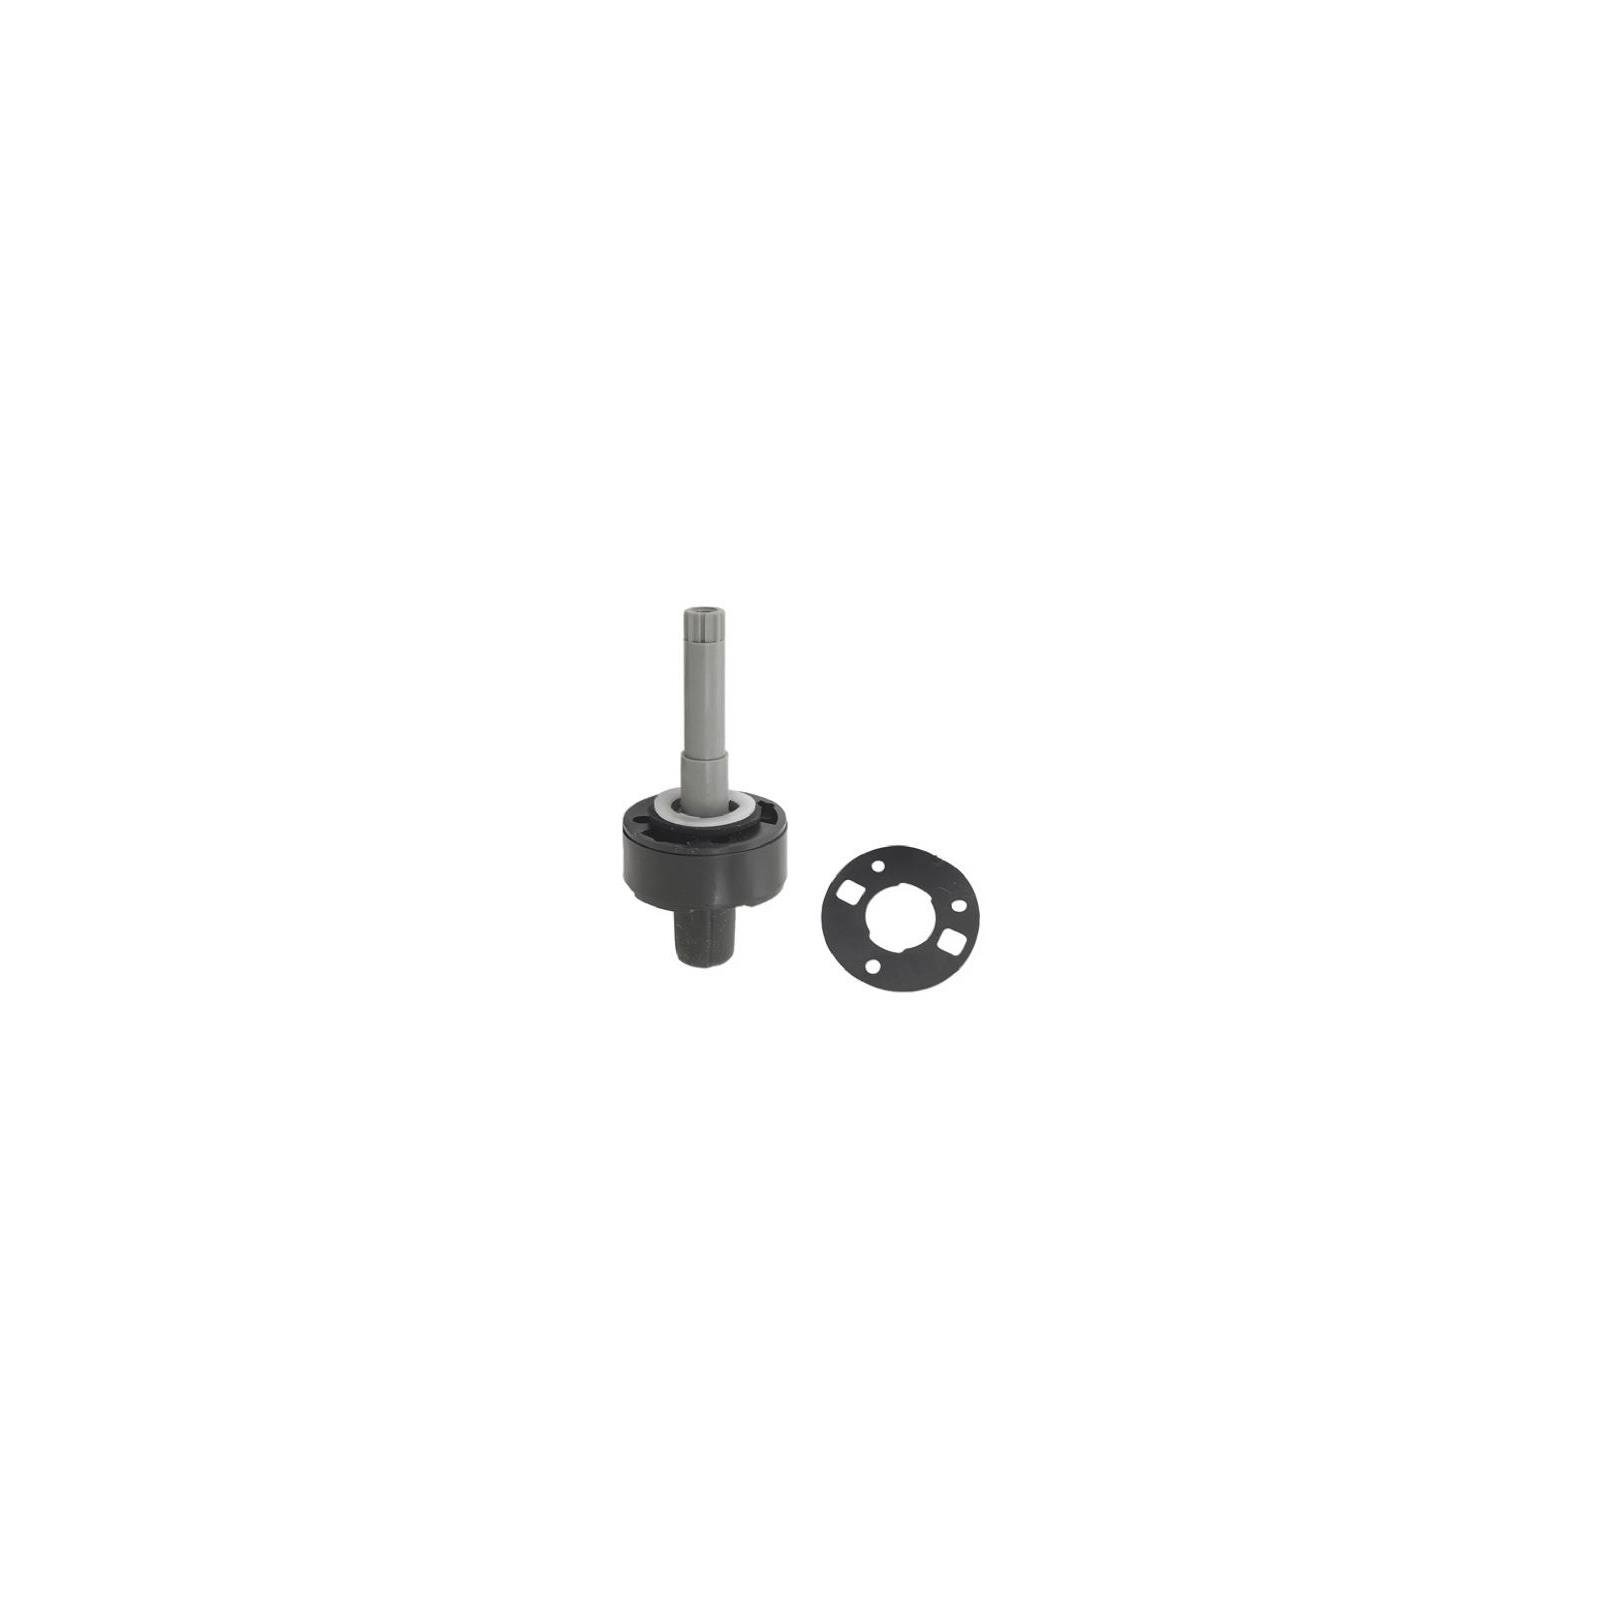 Brasscraft Mfg Sl1300 Faucet Cartridge For Bradley Faucets, Cole Faucets, And Kohler Faucets by BrassCraft Mfg